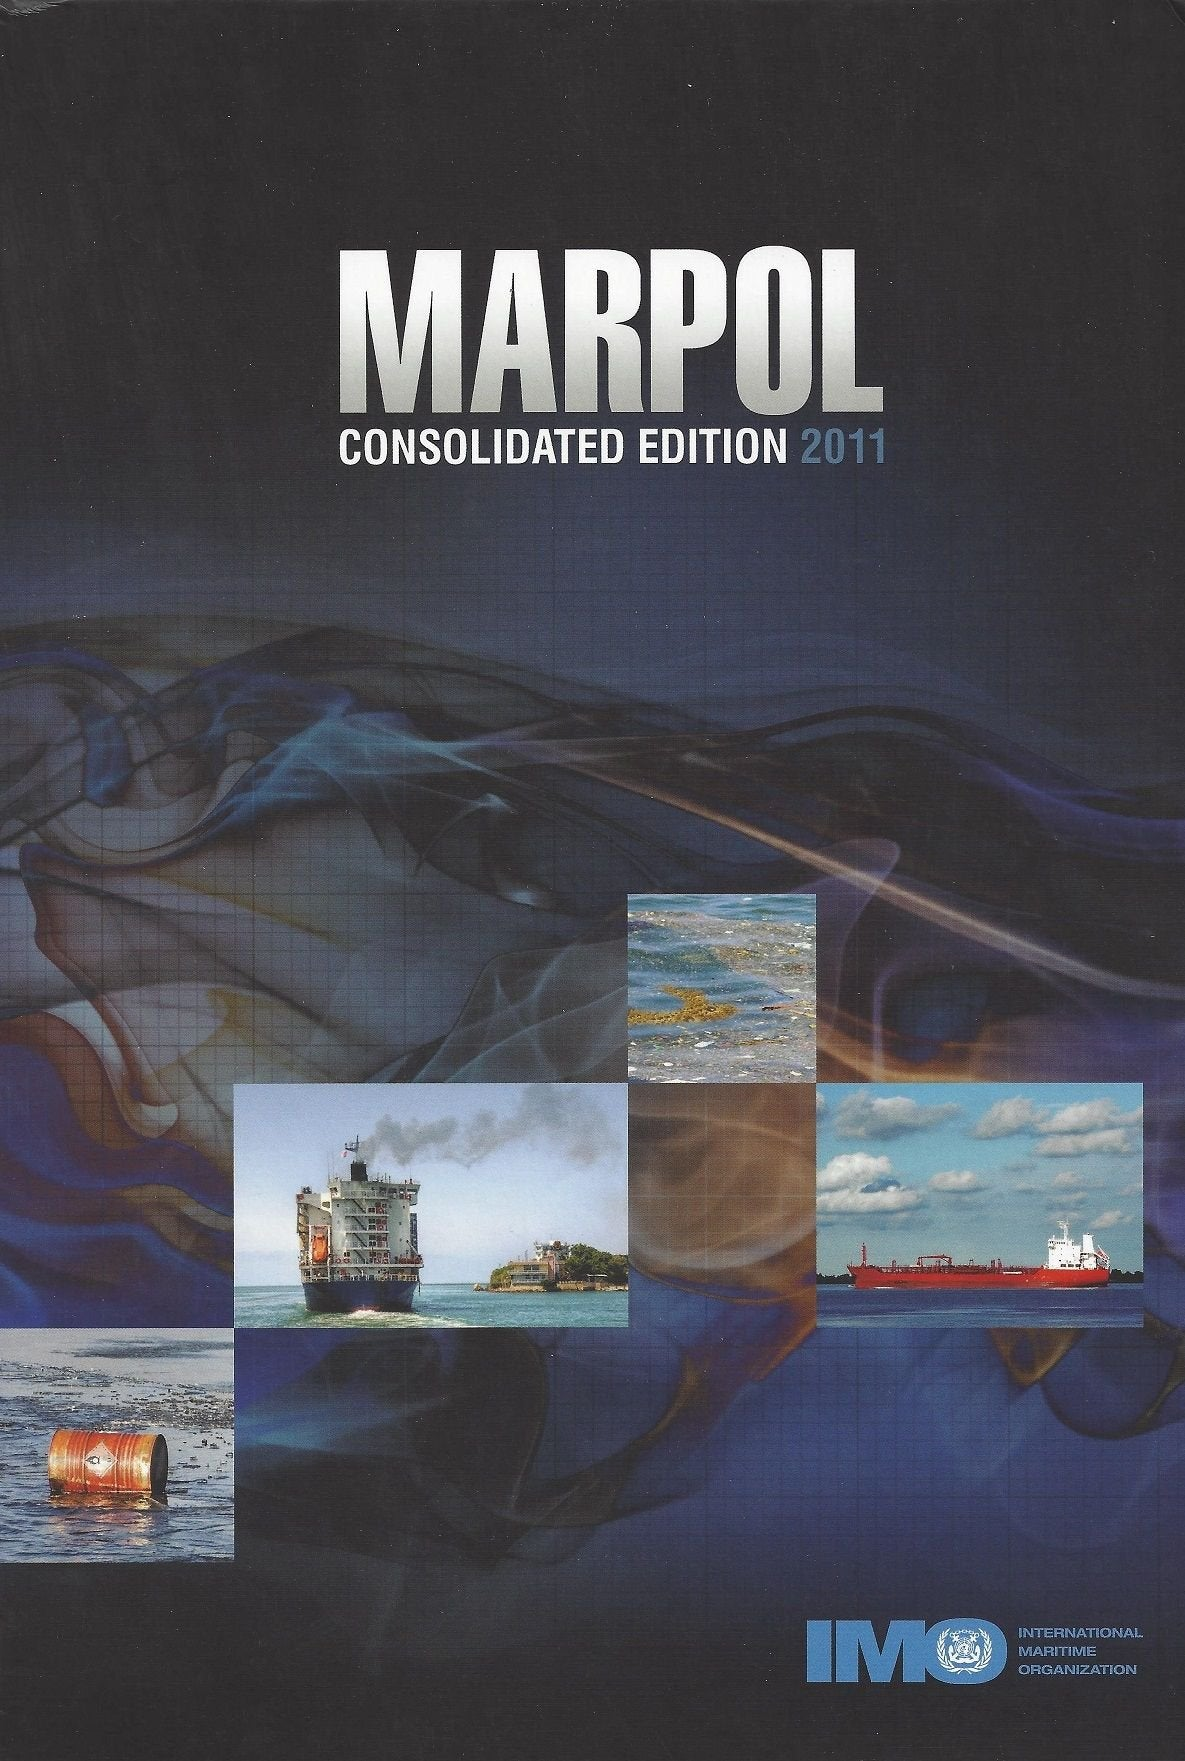 Marpol Consolidated Edition 2011 Cutter Maritime Port Sea